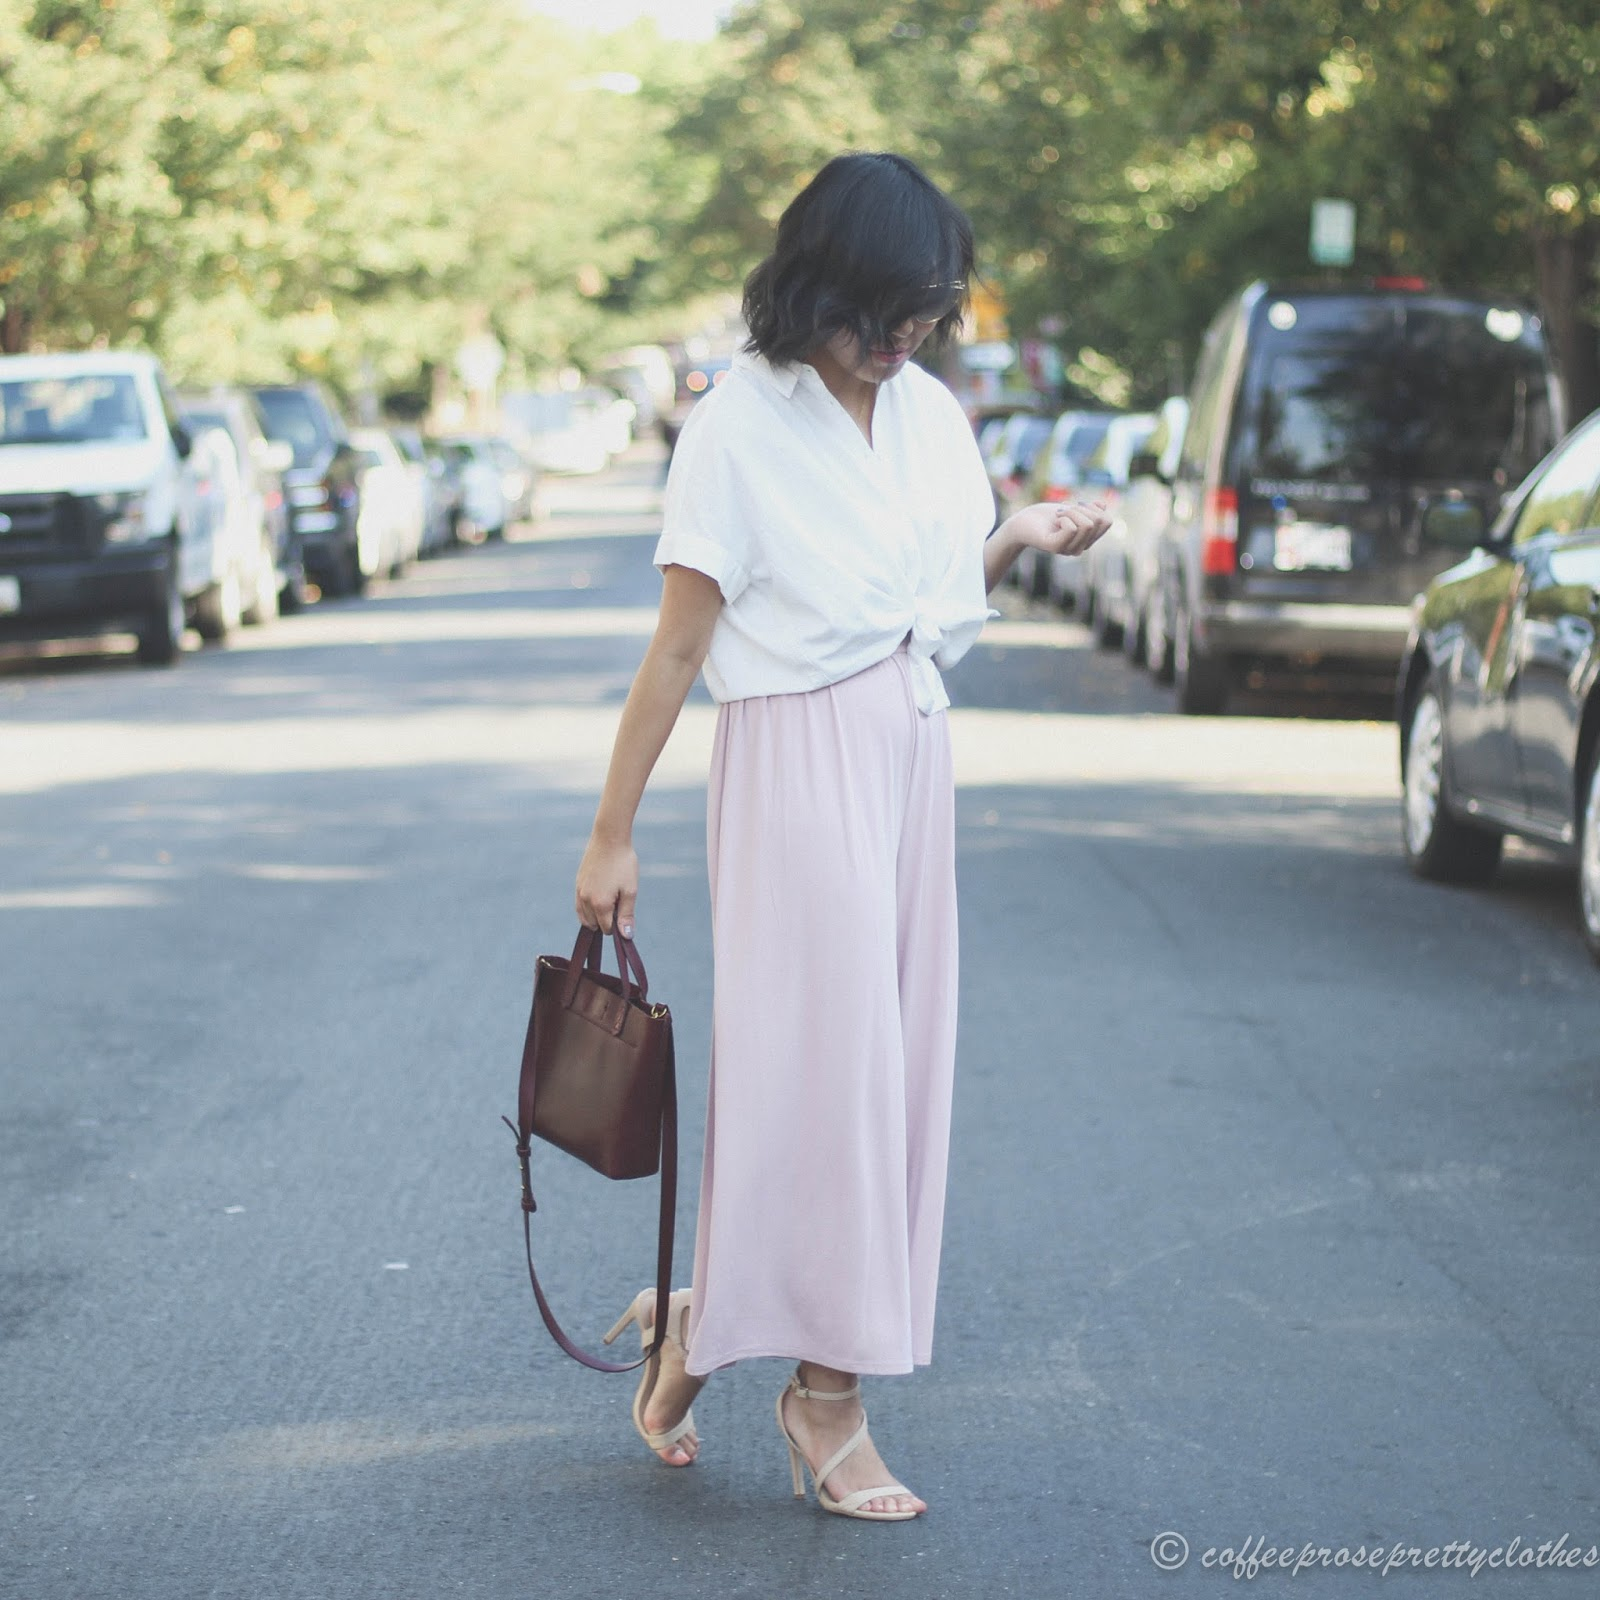 Urban Outfitters Culottes Jumpsuit, Madewell Central Shirt, Madewell Small Transport Crossbody